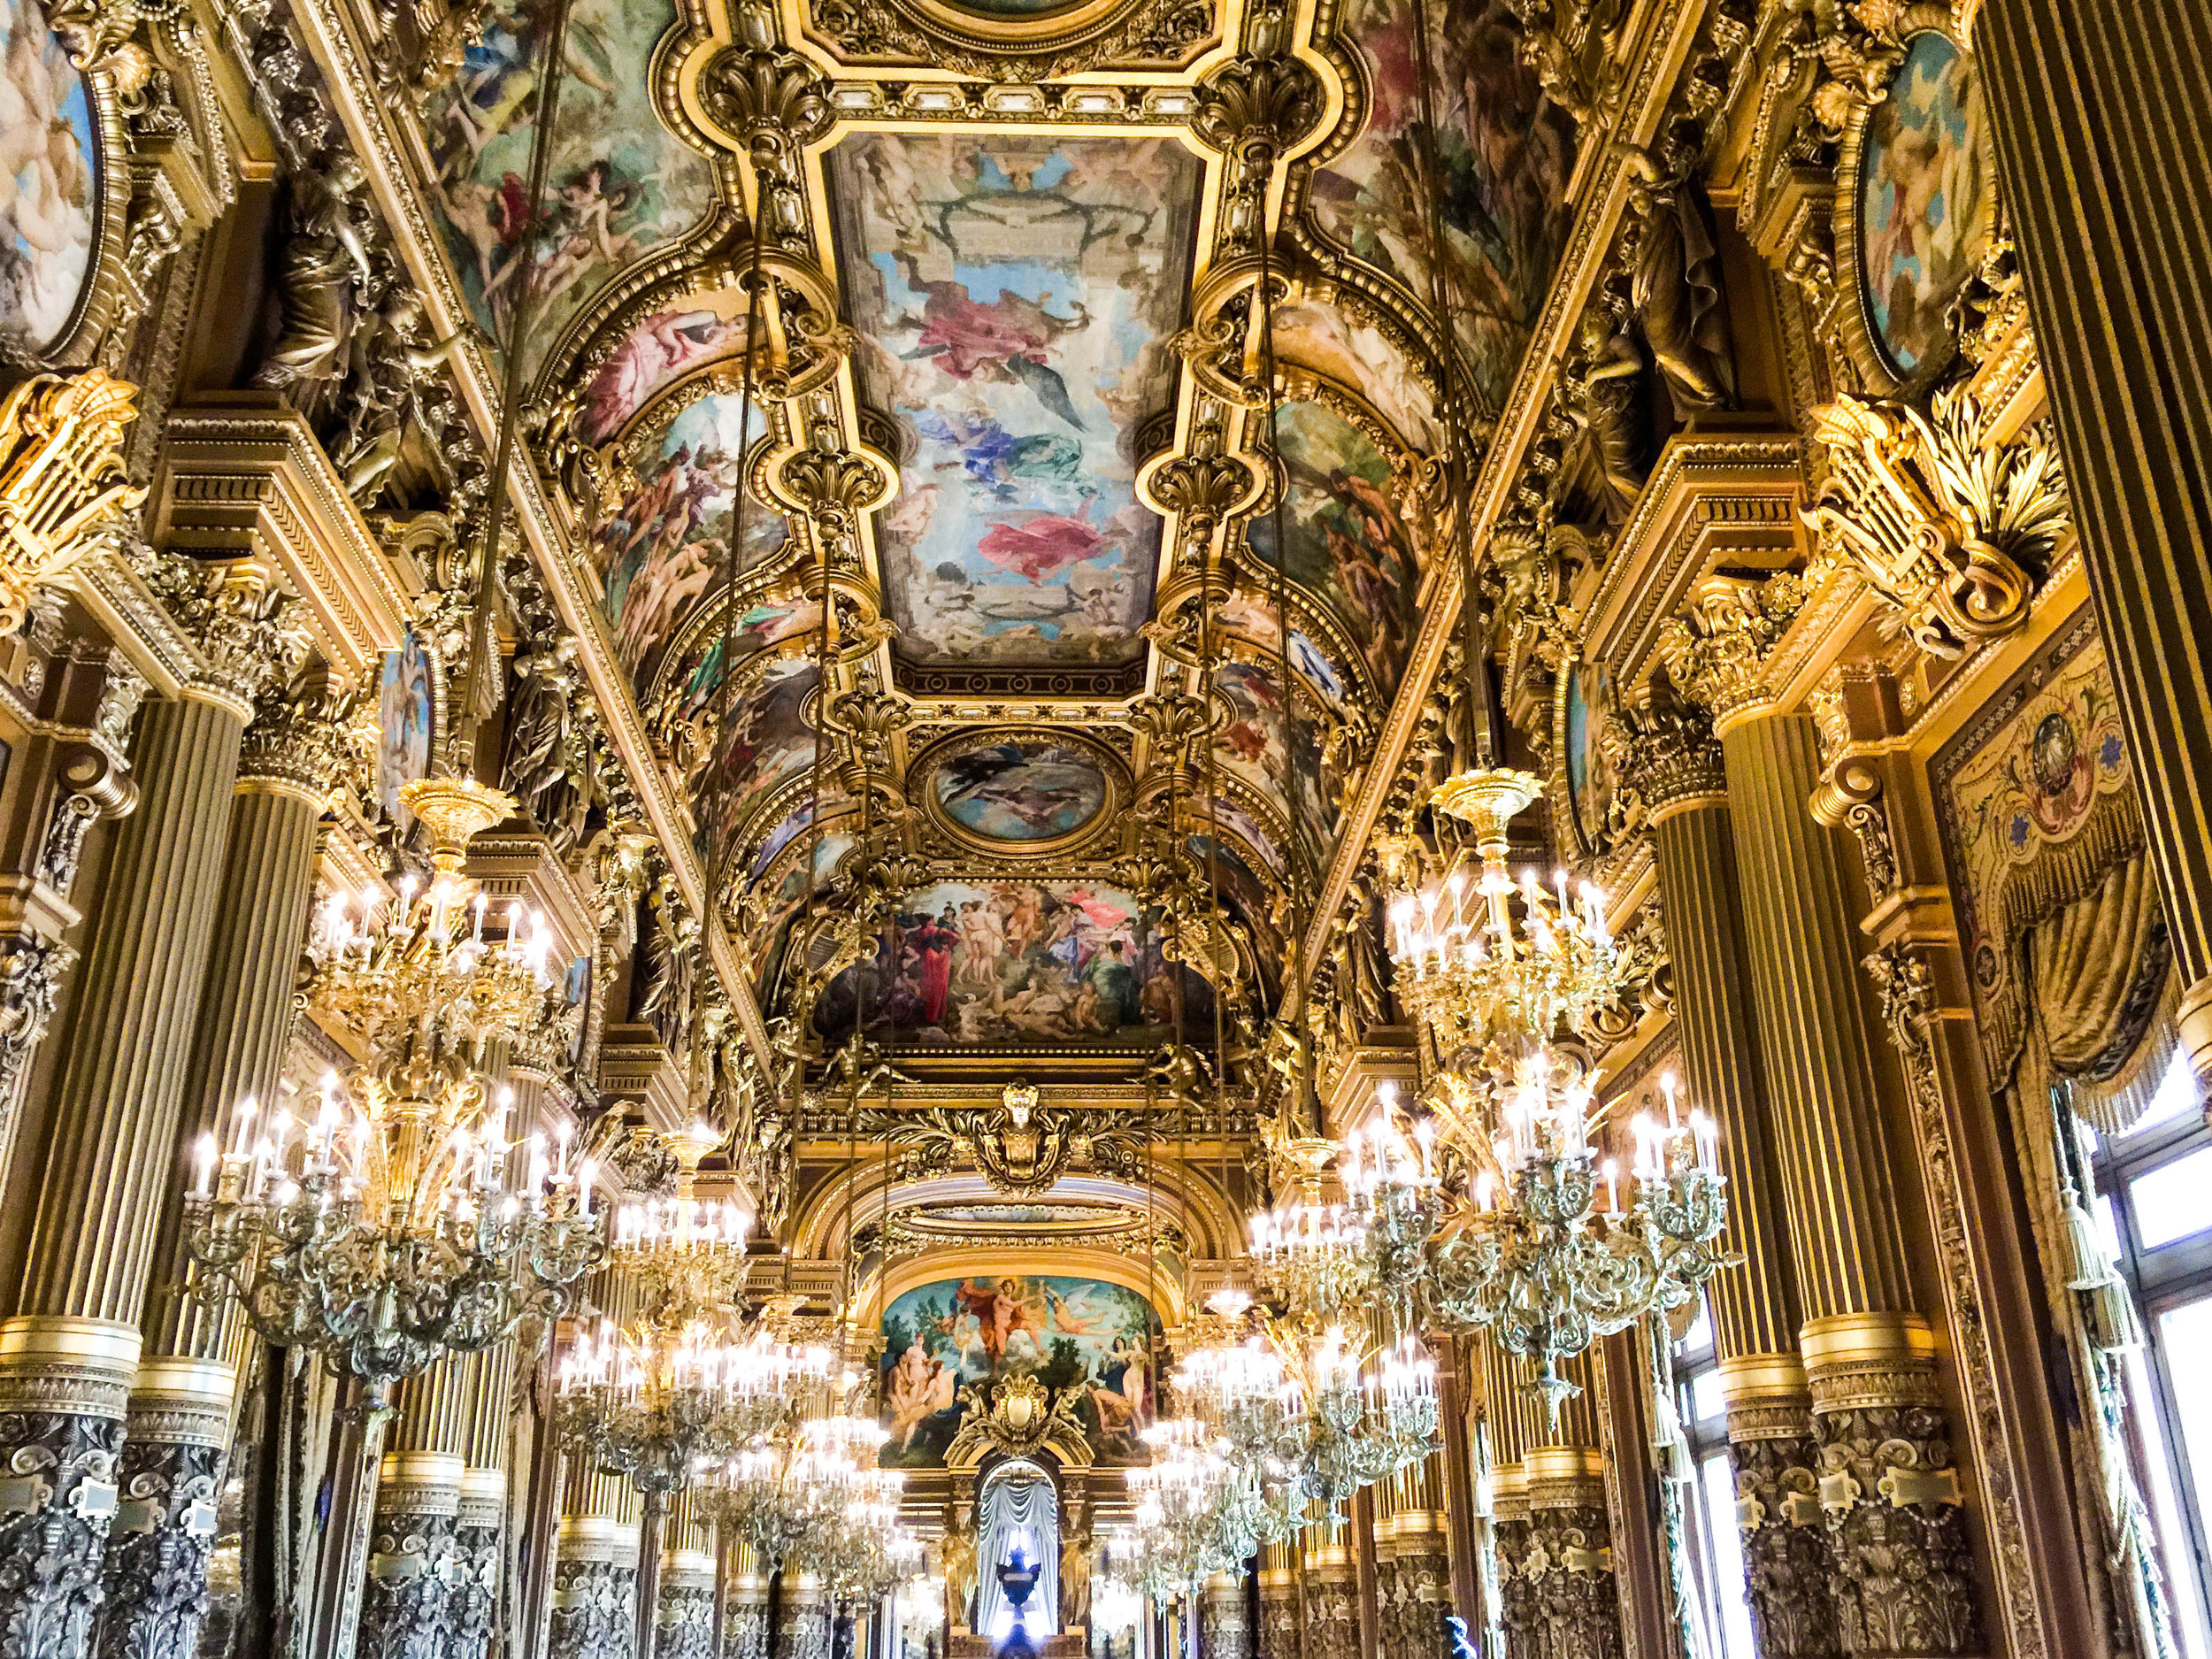 The ceiling of one of the halls in the Paris Opera House.